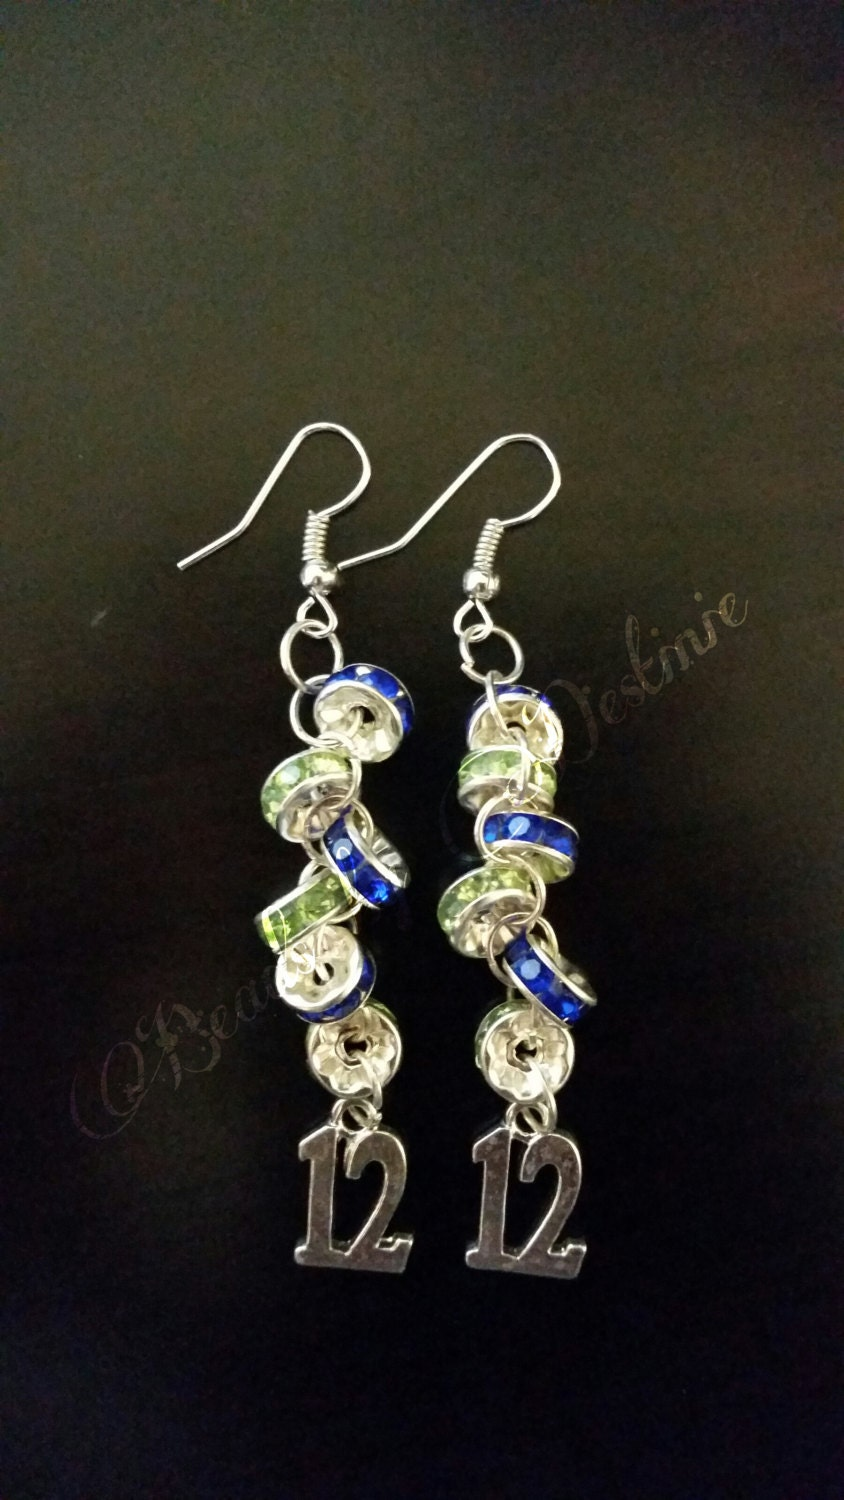 handmade jewelry seattle inspired by seattle seahawk handmade jewelry handmade 6696